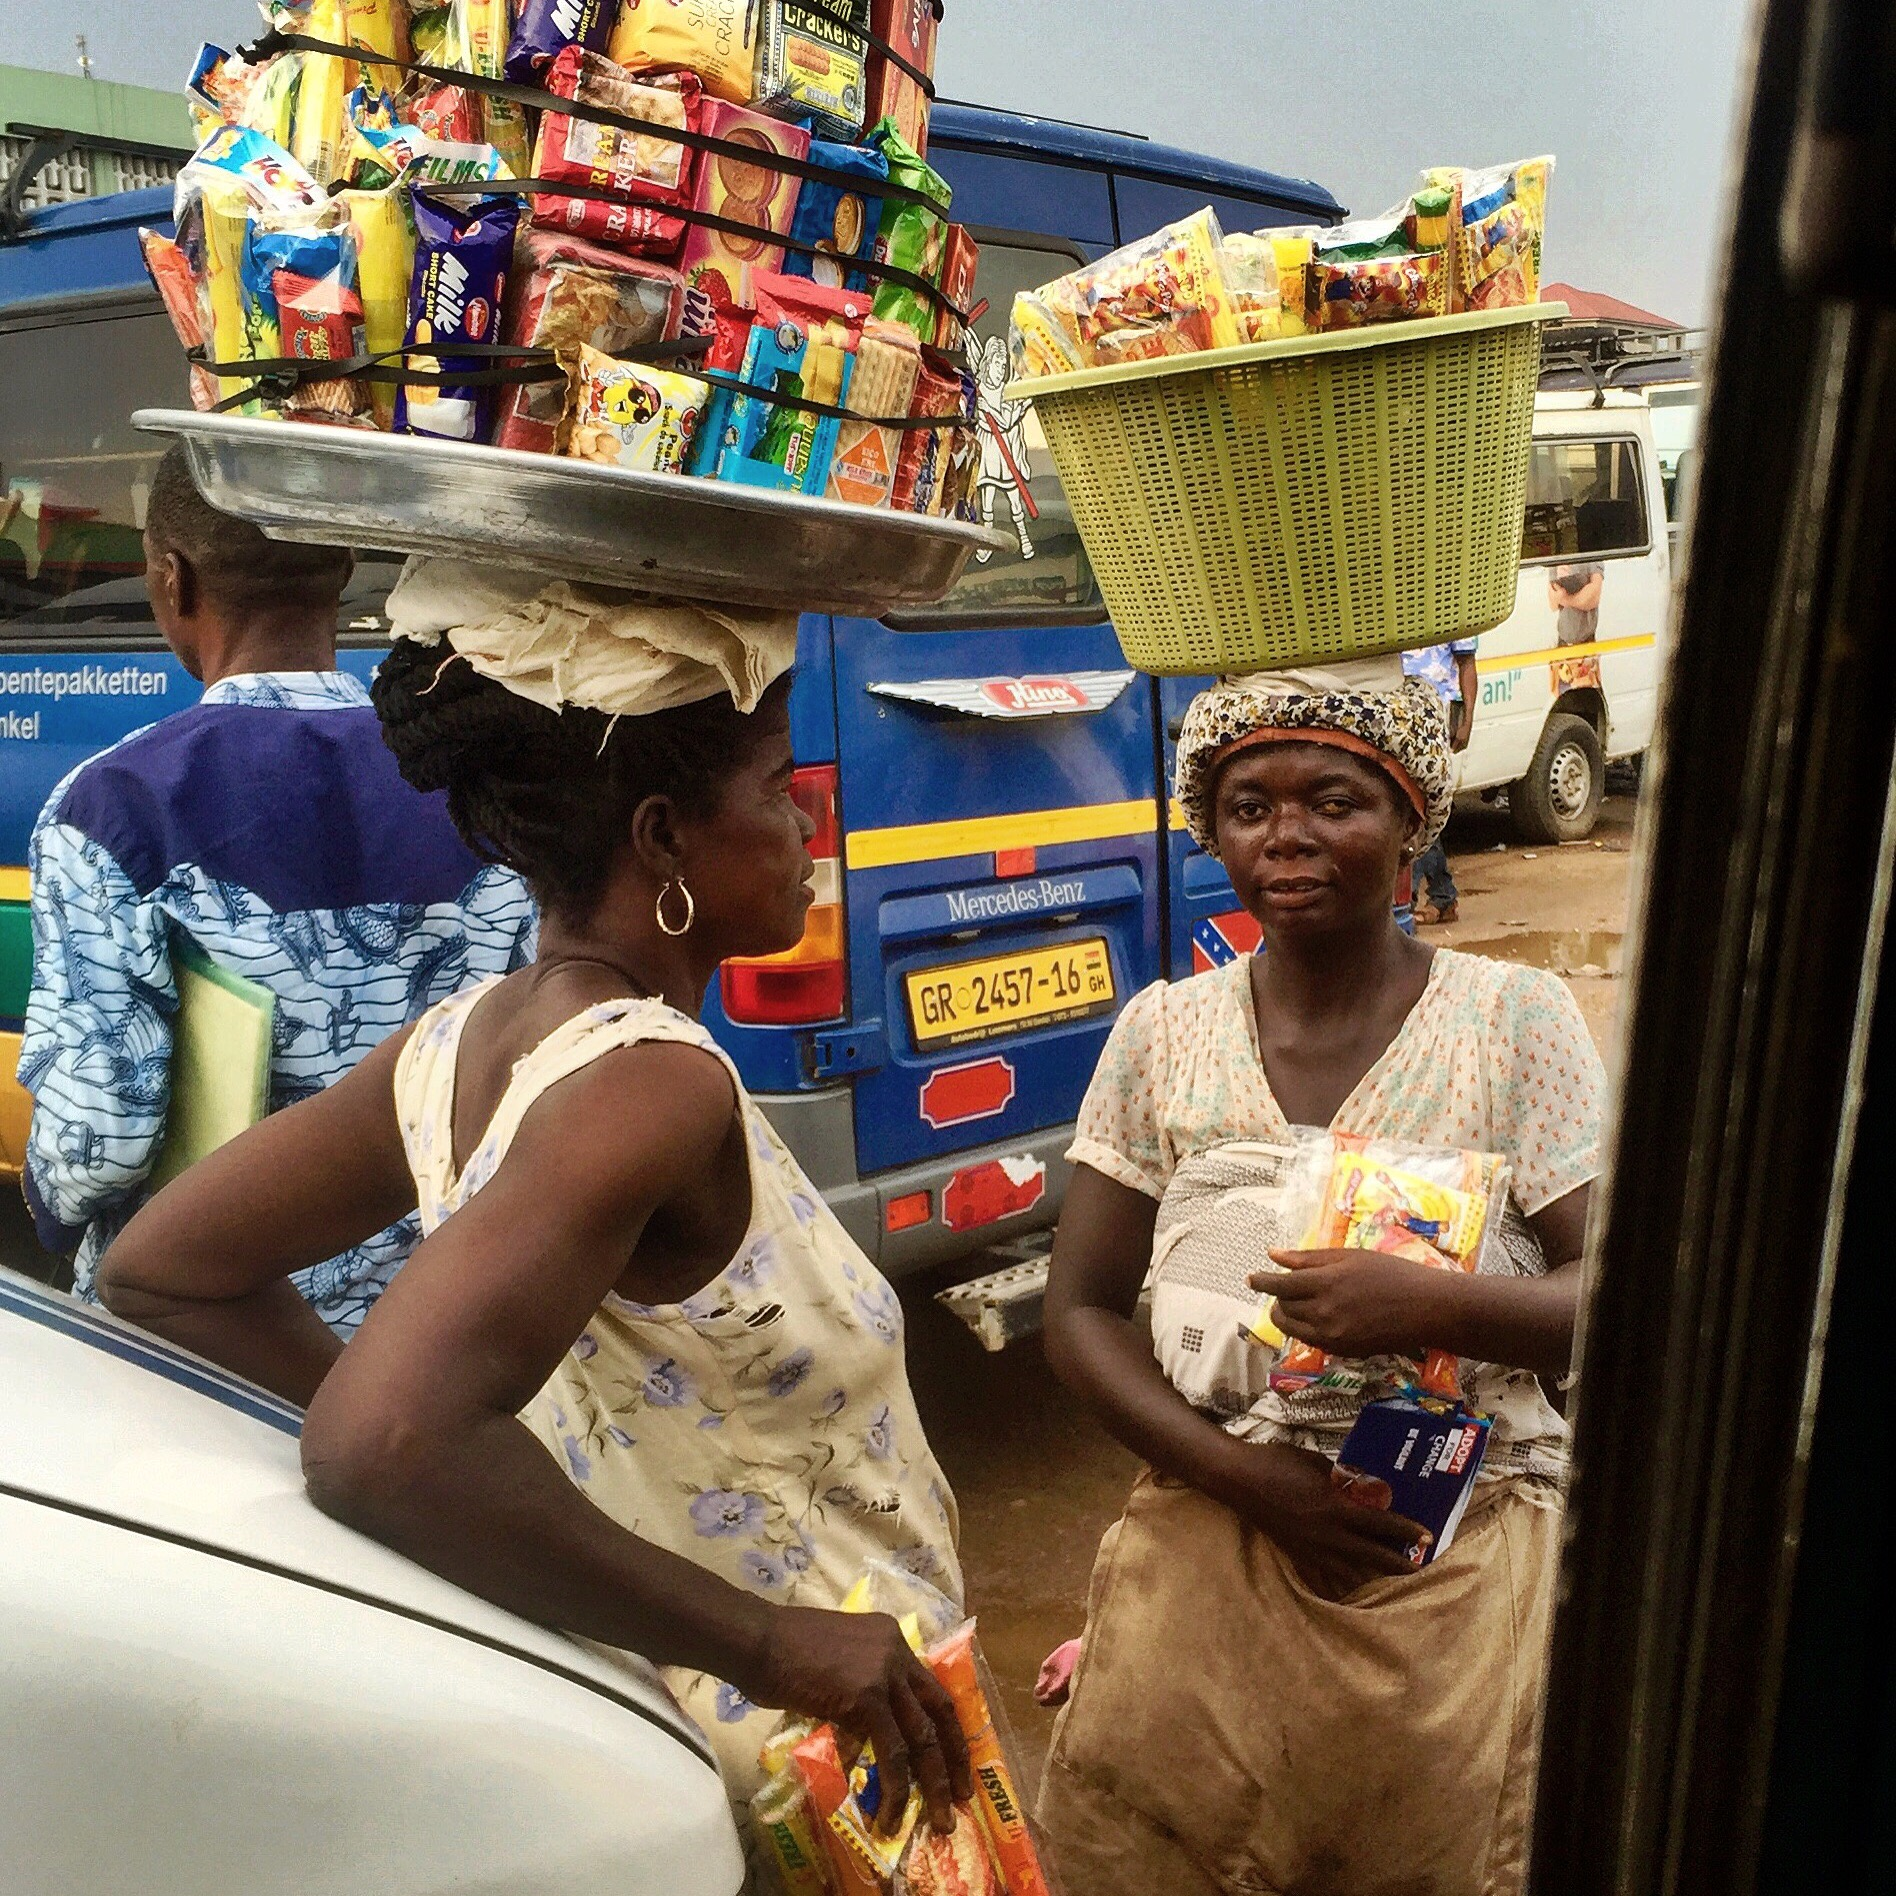 Two women talking with baskets on their heads filled with packets of crackers and cookies